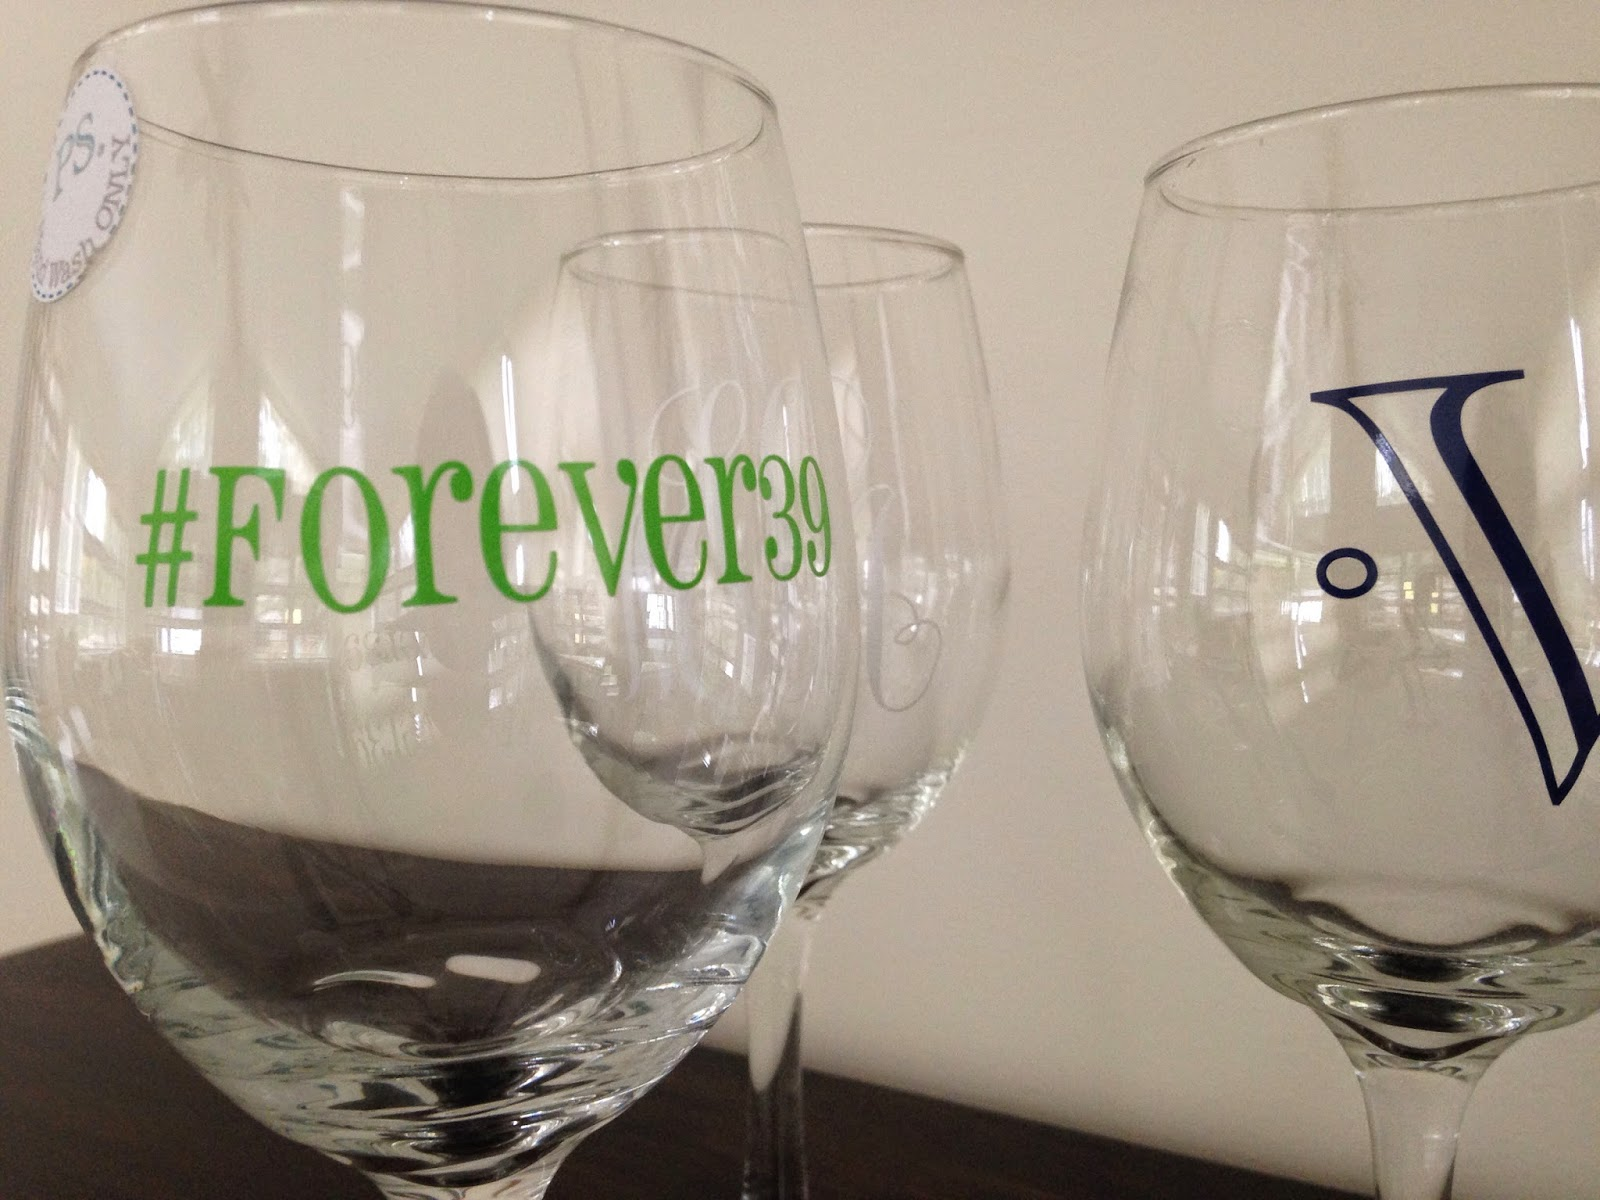 Putting Vinyl On Wine Glasses Tips For Success Silhouette School - Custom vinyl decals for wine glasses